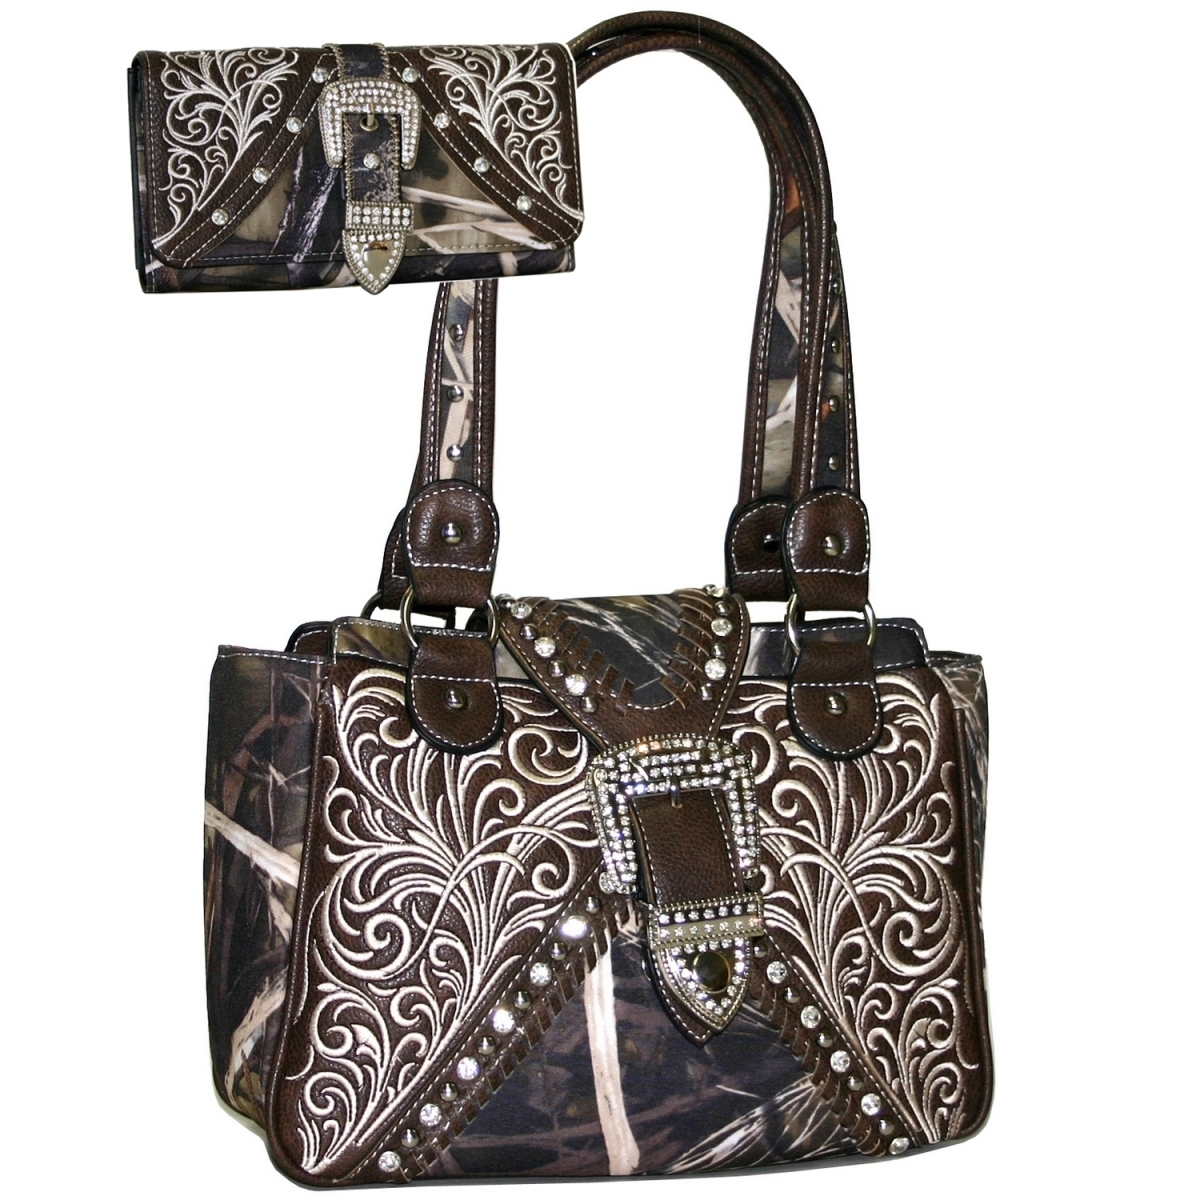 Gold Rush BT922SET-CAMO Western Concealed Embroided Purse with Matching Wallet Brown Trim - Camo